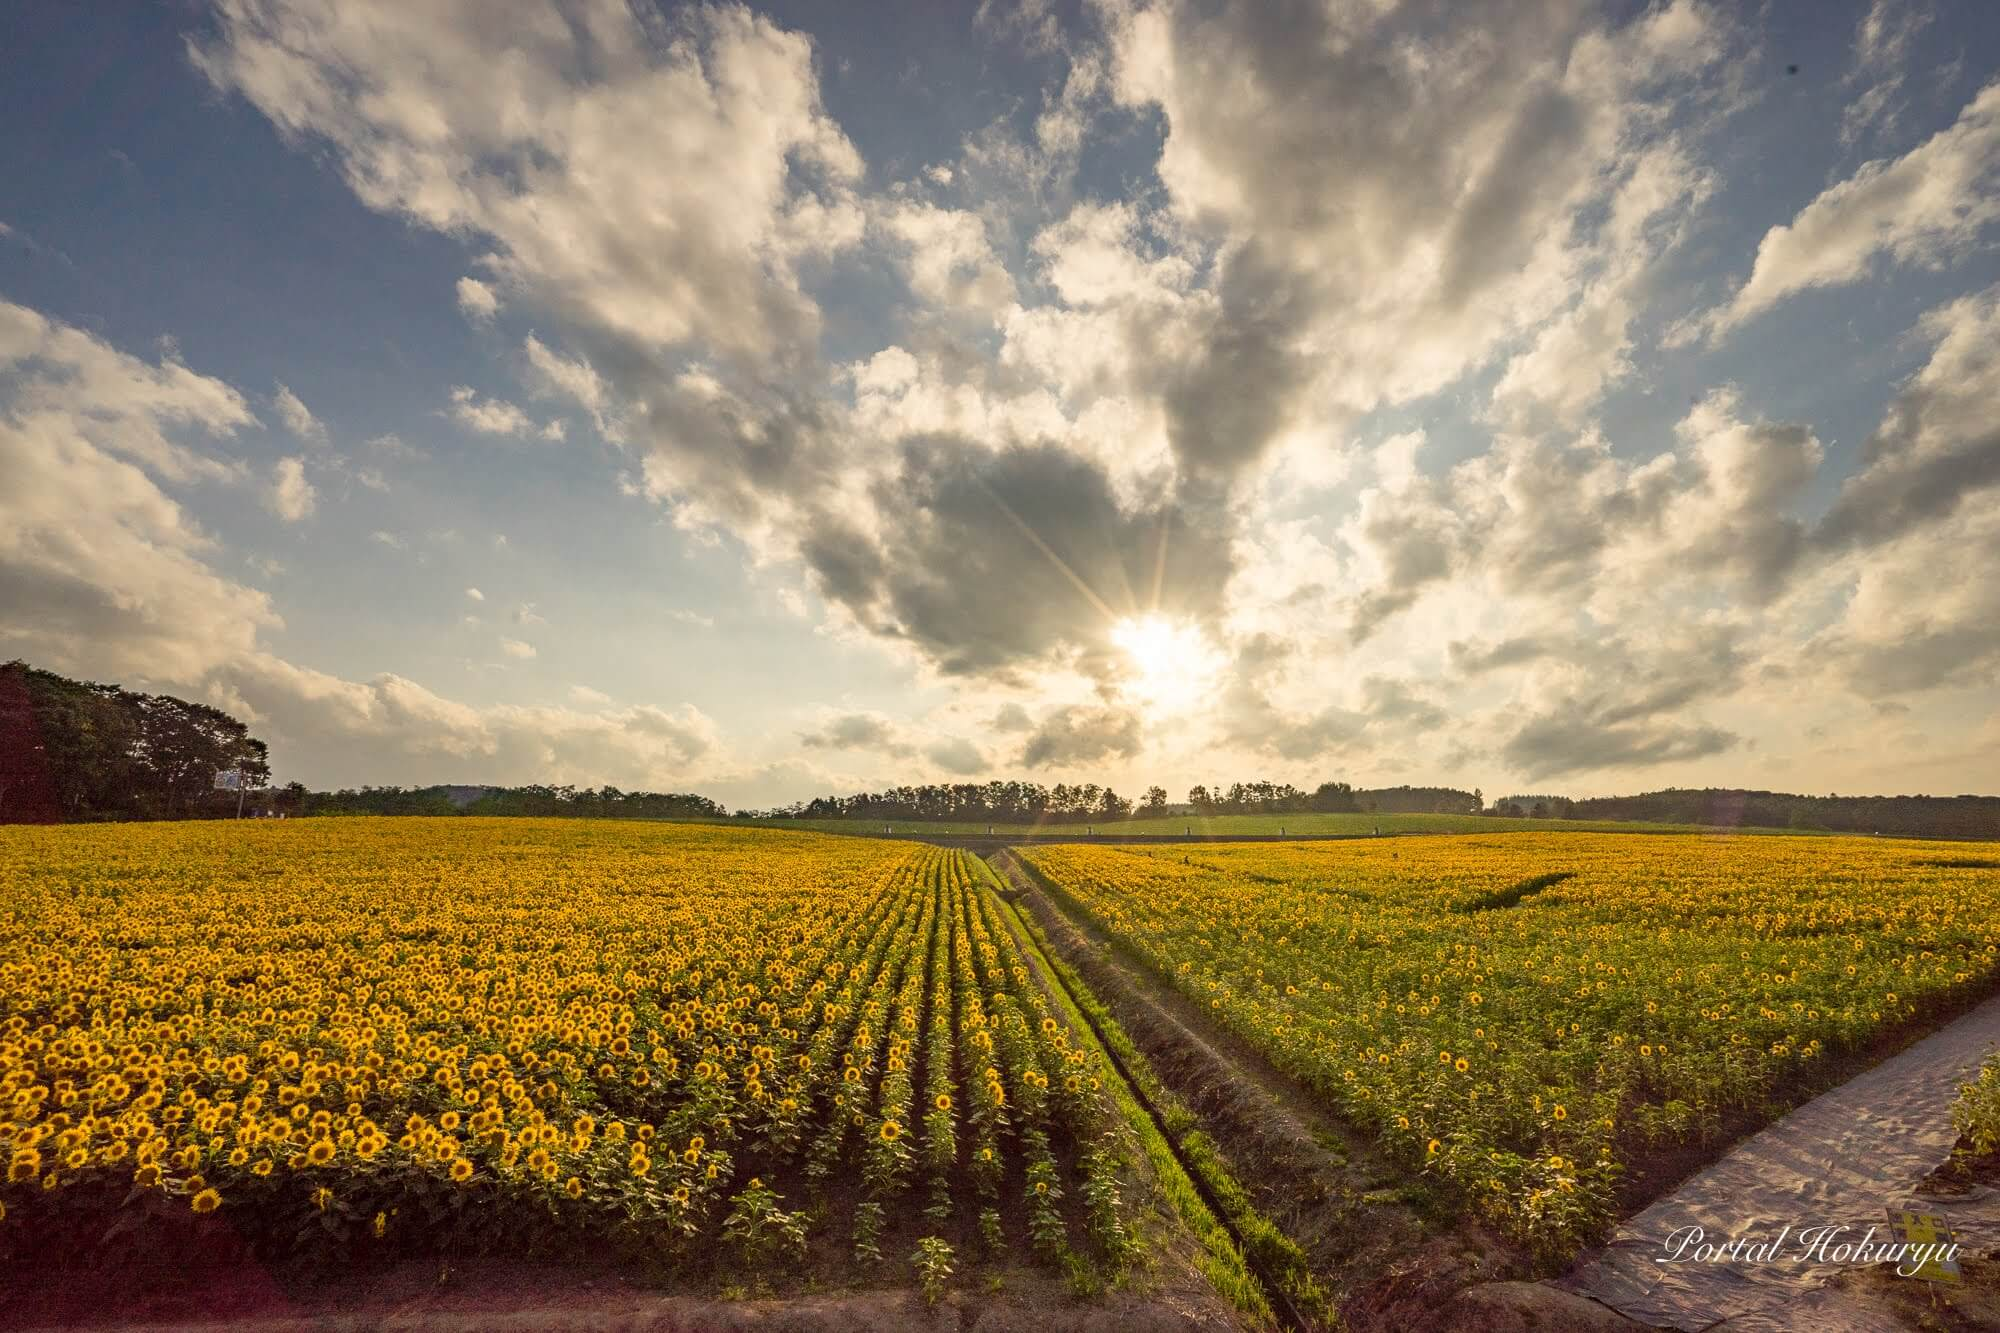 Get Lost in a Sea of Sunflowers at the Hokuryu Sunflower Village